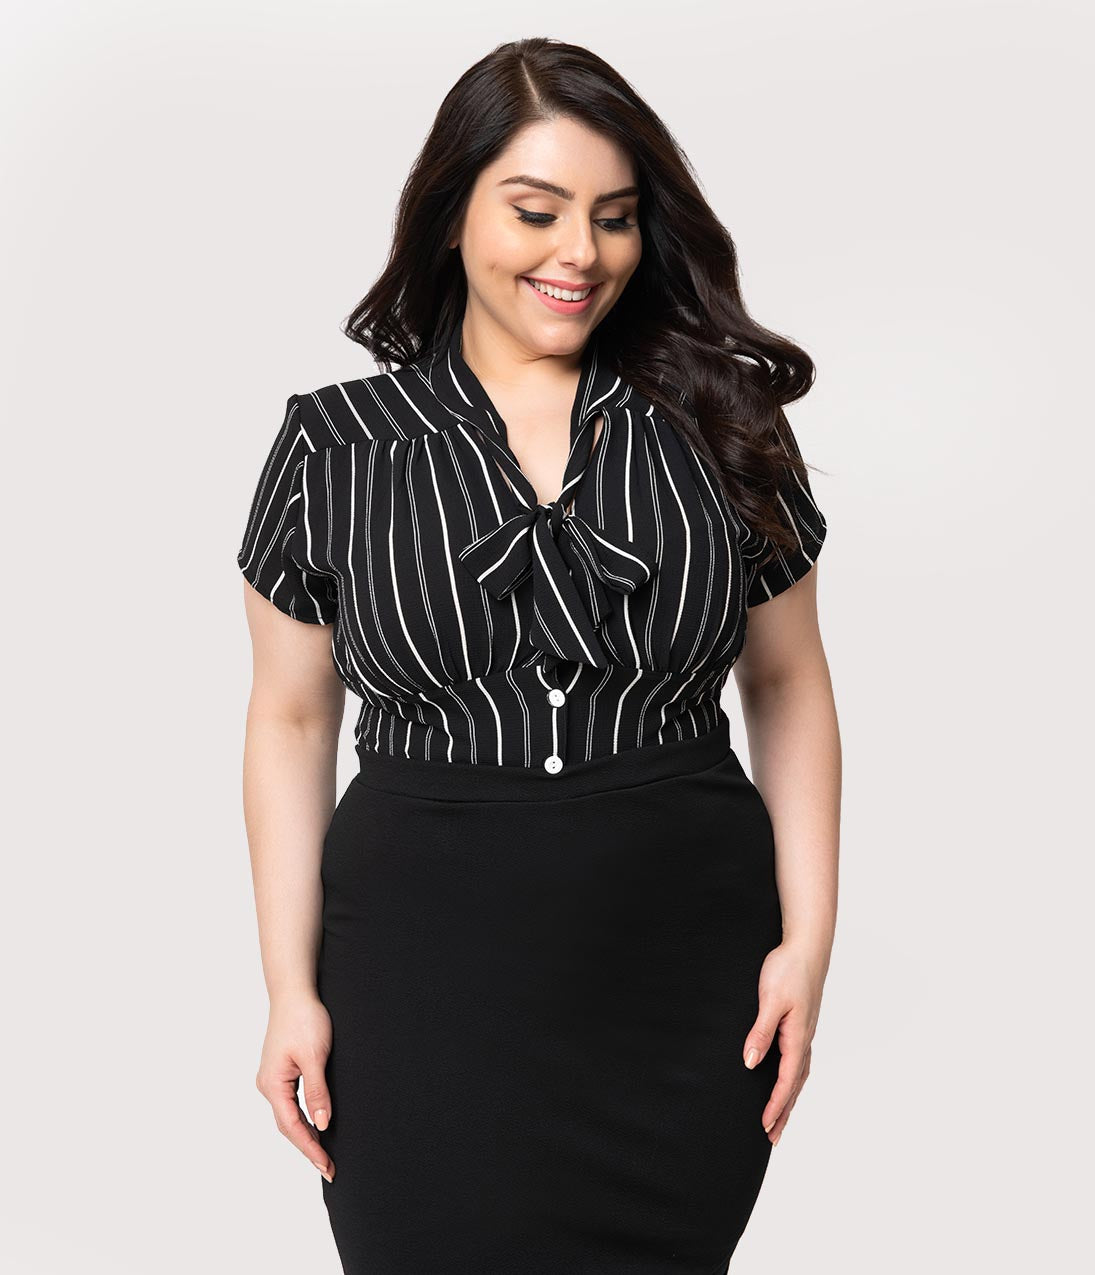 1940s Plus Size Fashion: Style Advice from 1940s to Today Steady Plus Size Retro 1940S Black  White Stripe Button Up Harlow Top $52.00 AT vintagedancer.com